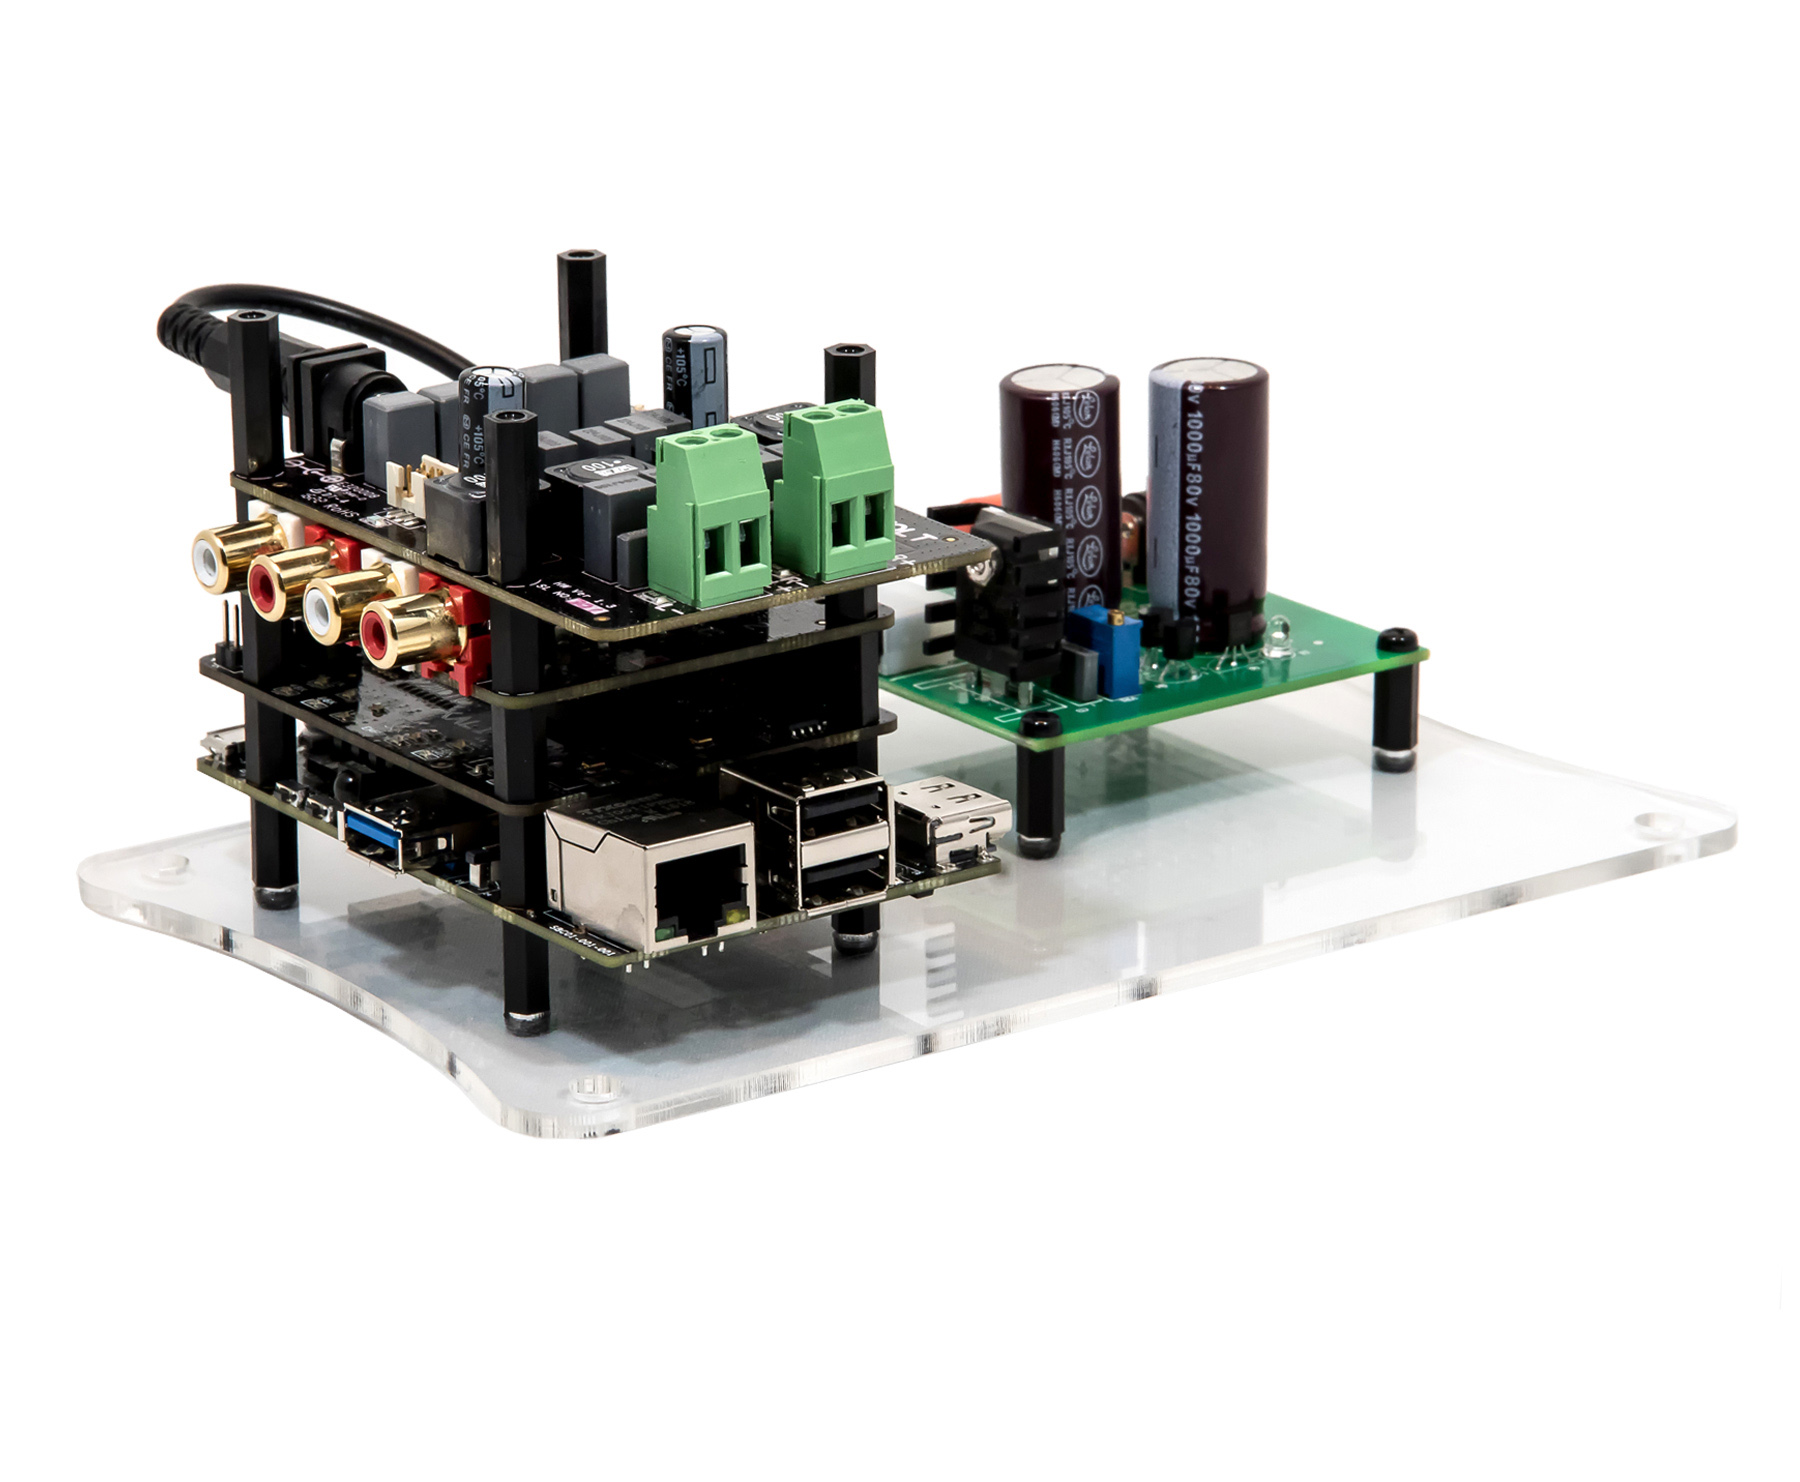 Piano DAC for raspberry pi